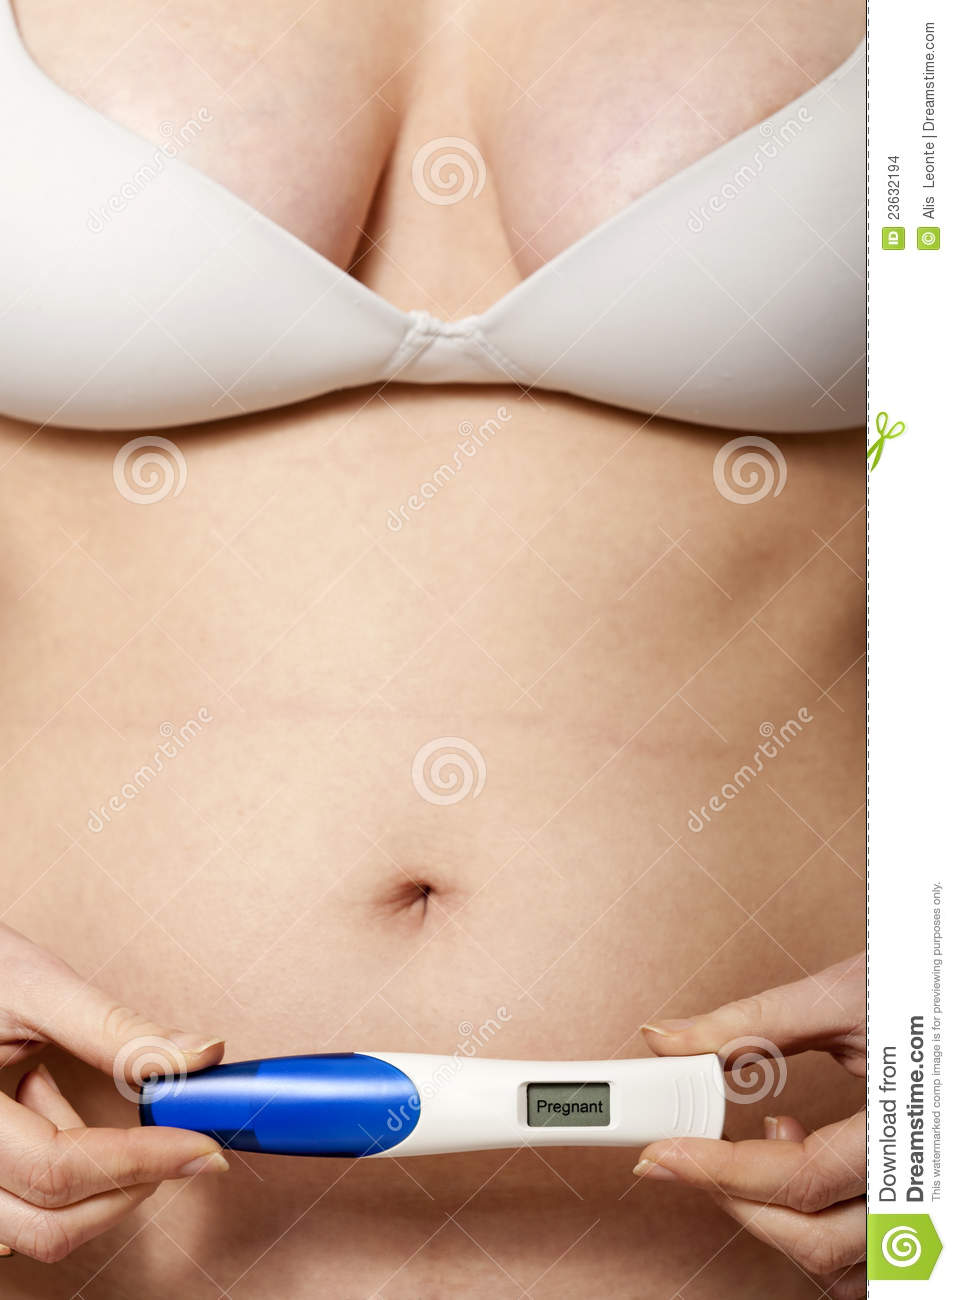 Pregnant woman showing positive pregnancy test